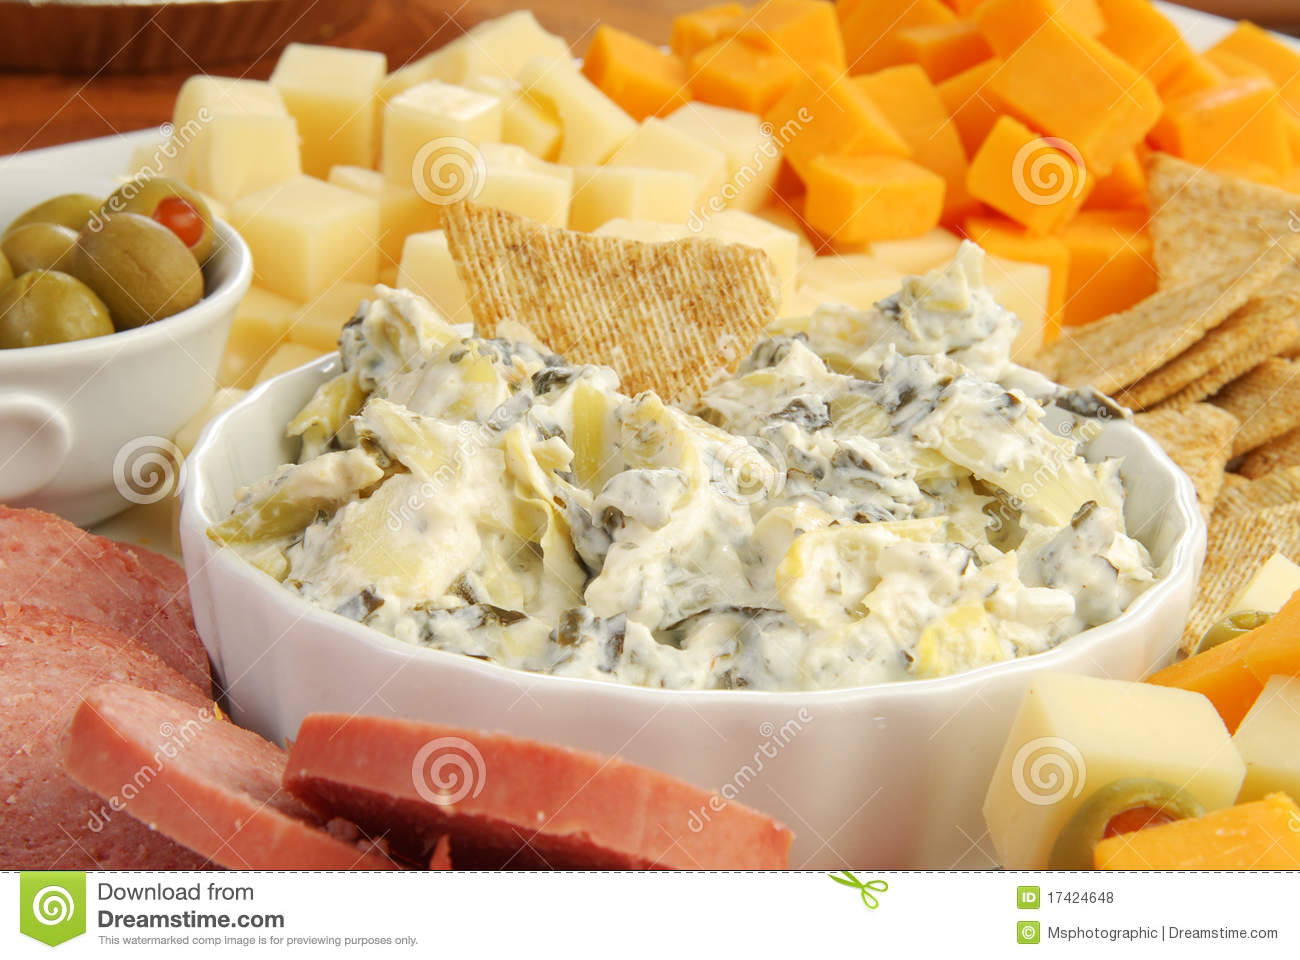 Of Spinach Artichoke Dip On A Plate With Crackers Meats And Cheeses